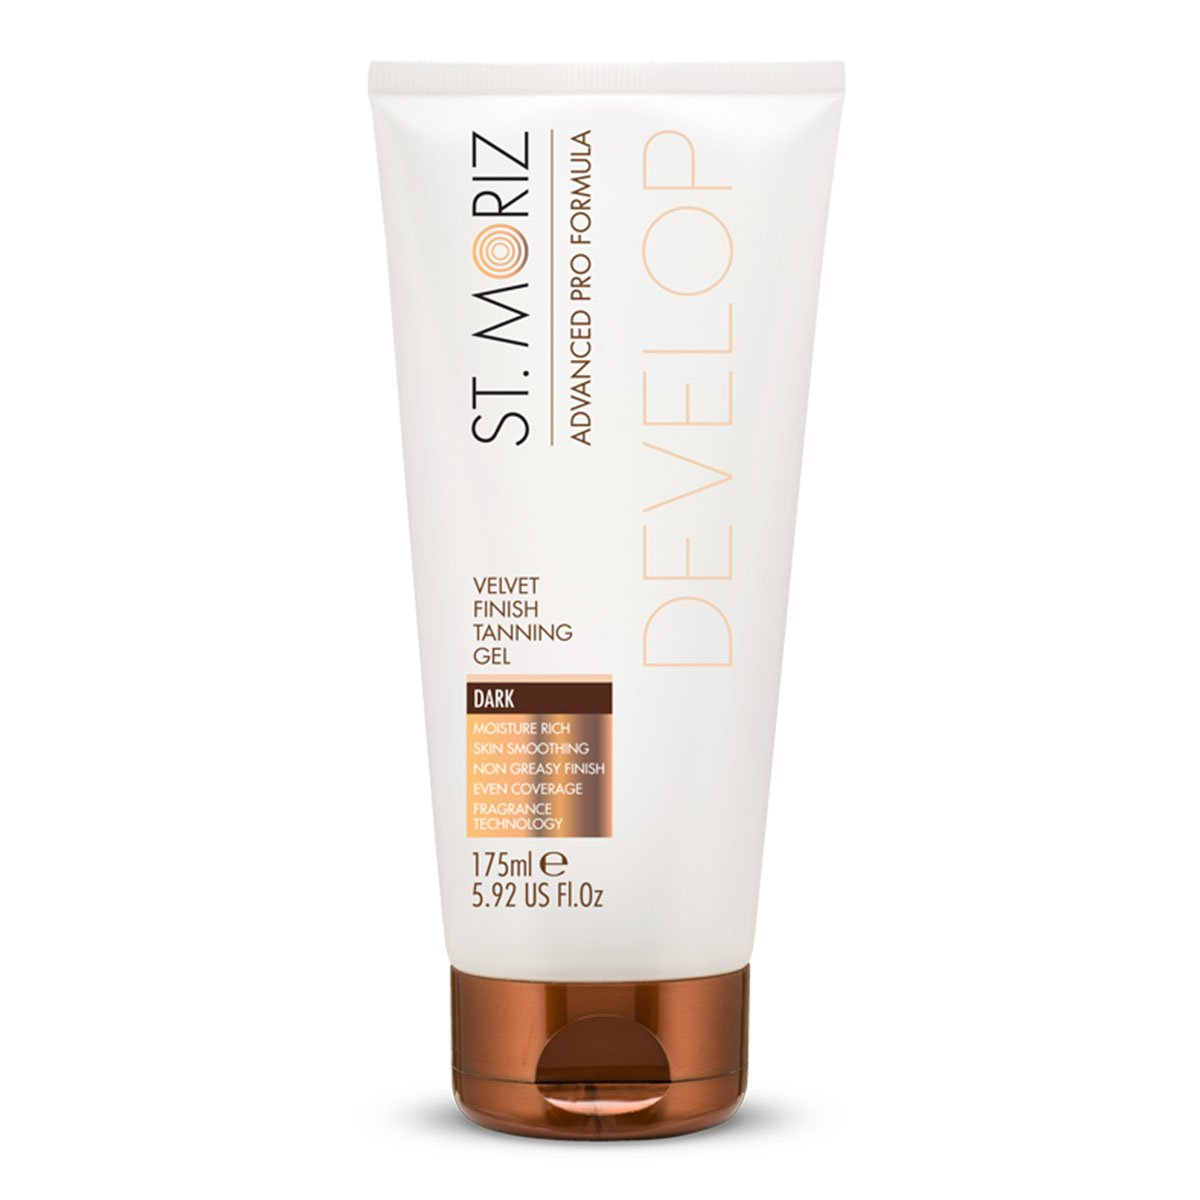 ST Moriz, gel Advanced Pro formula dal tocco vellutato, colore scuro Cosmarida 050.151